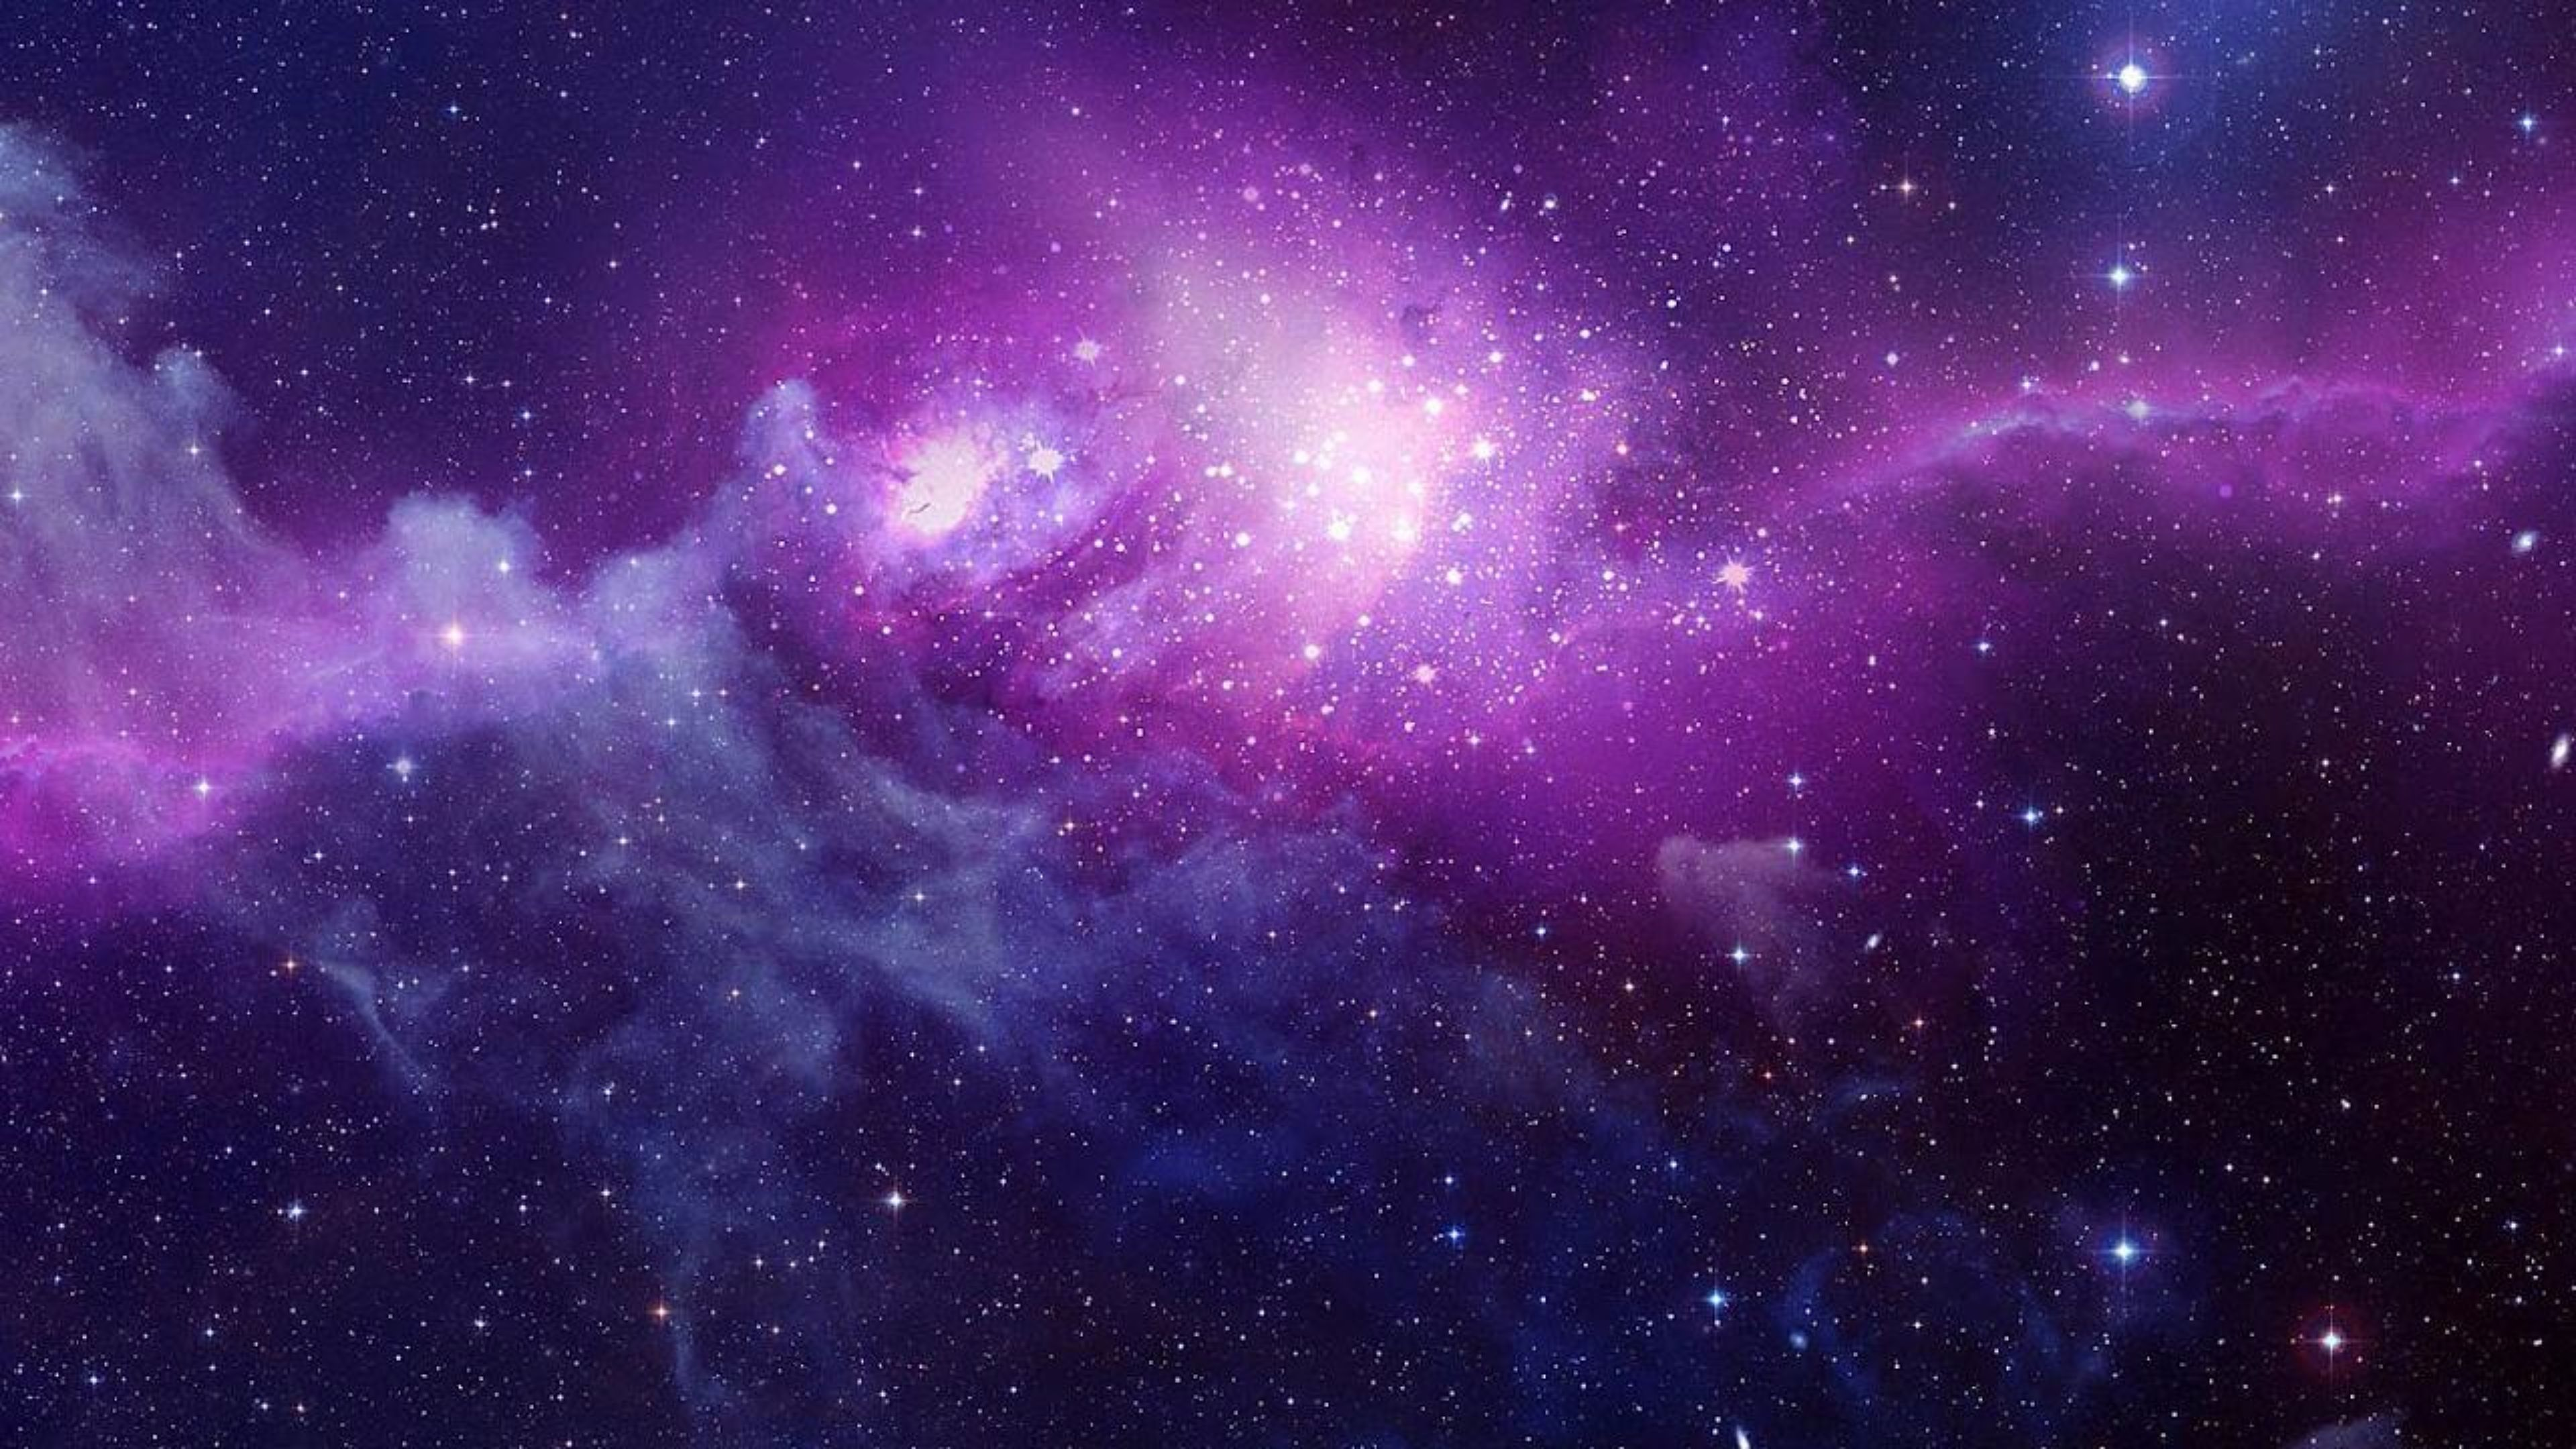 3840x2160 4K Space Wallpapers are the best... Here is a